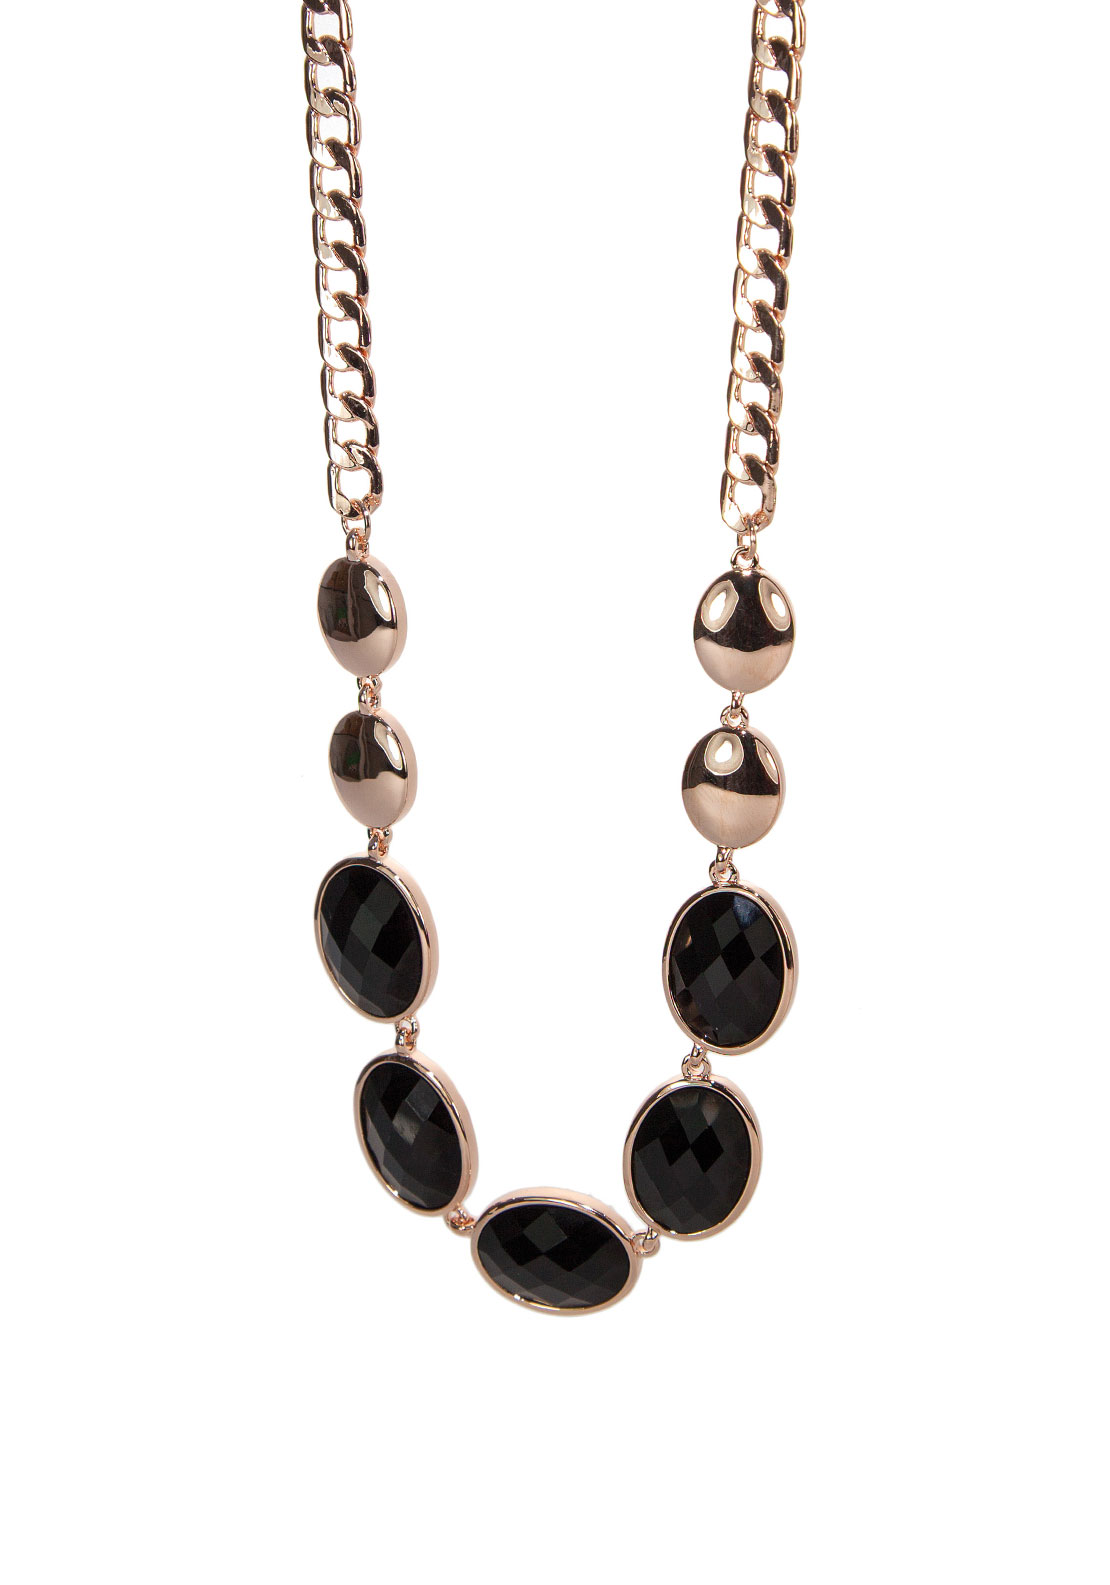 Absolute Jewellery Black Gemstone Necklace